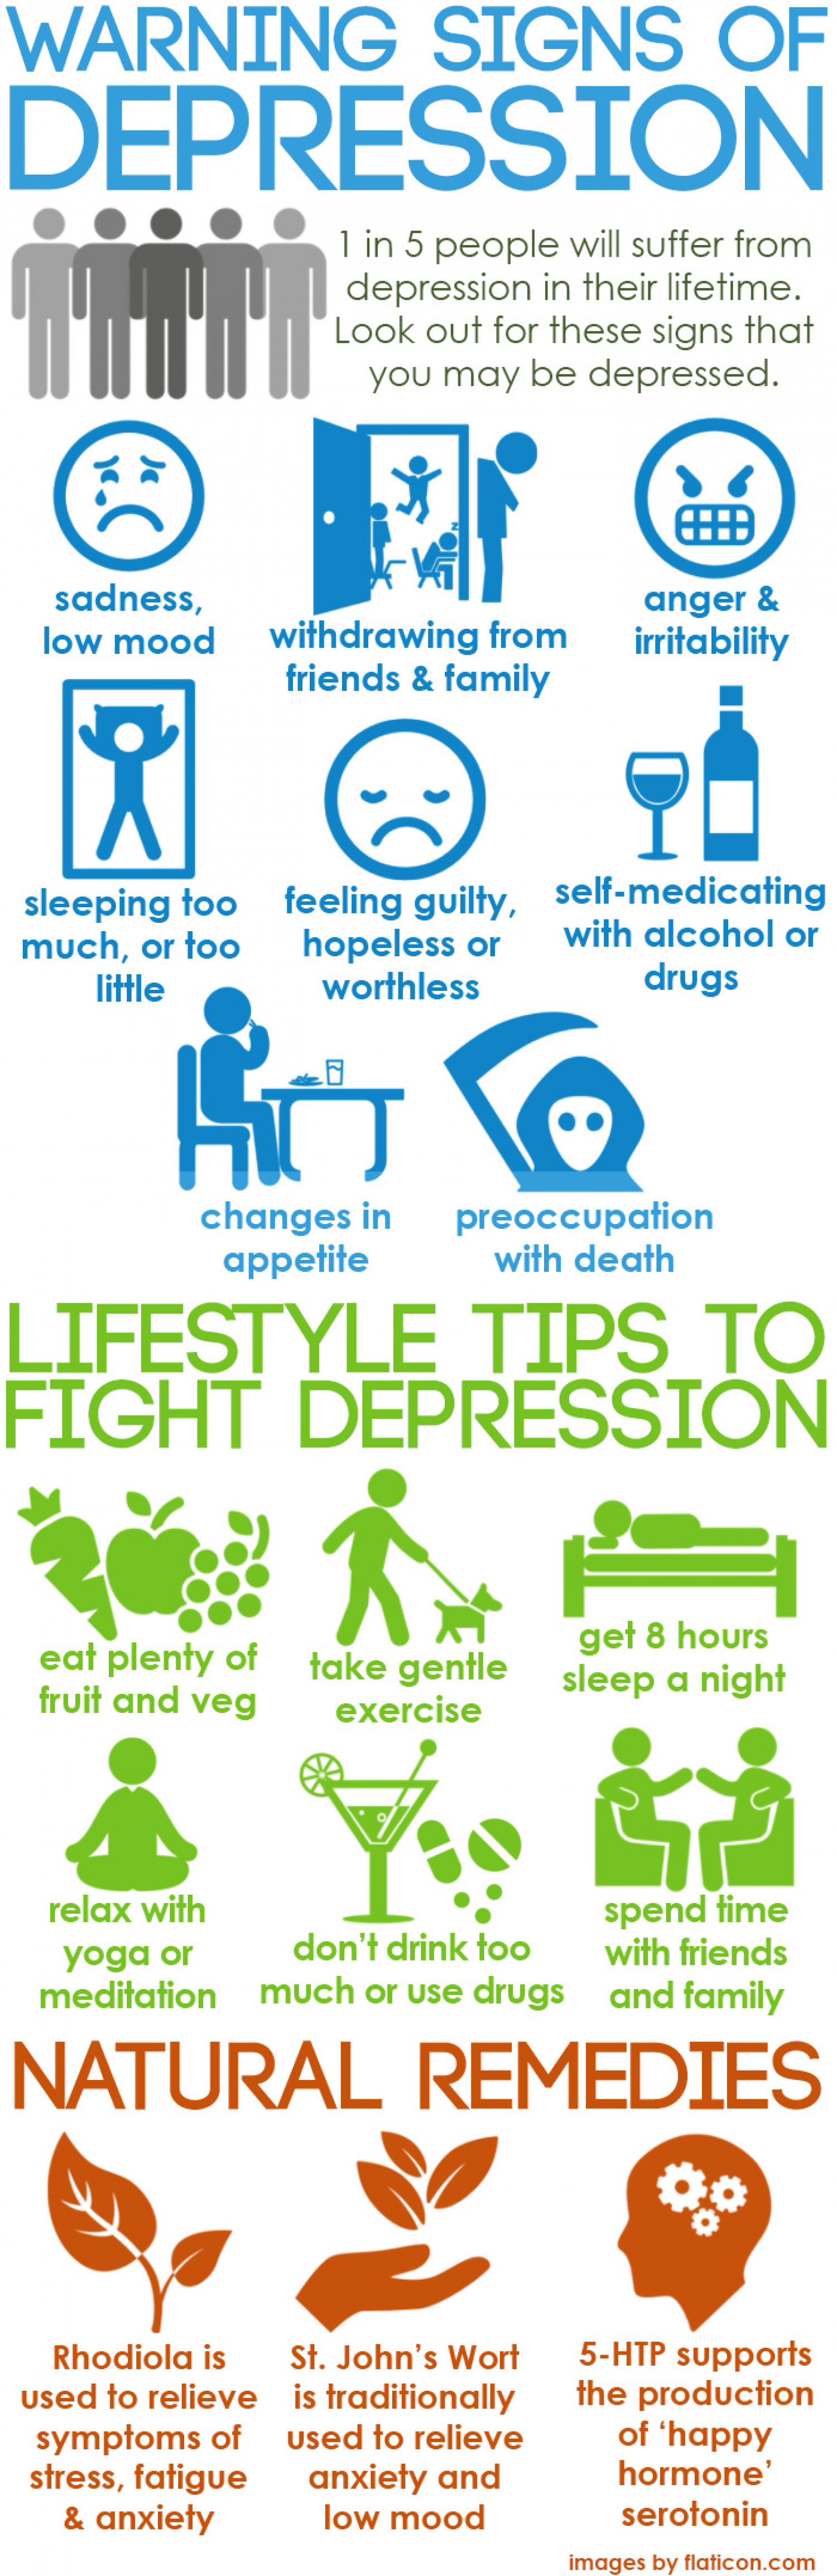 Warning Signs of Depression Infographic